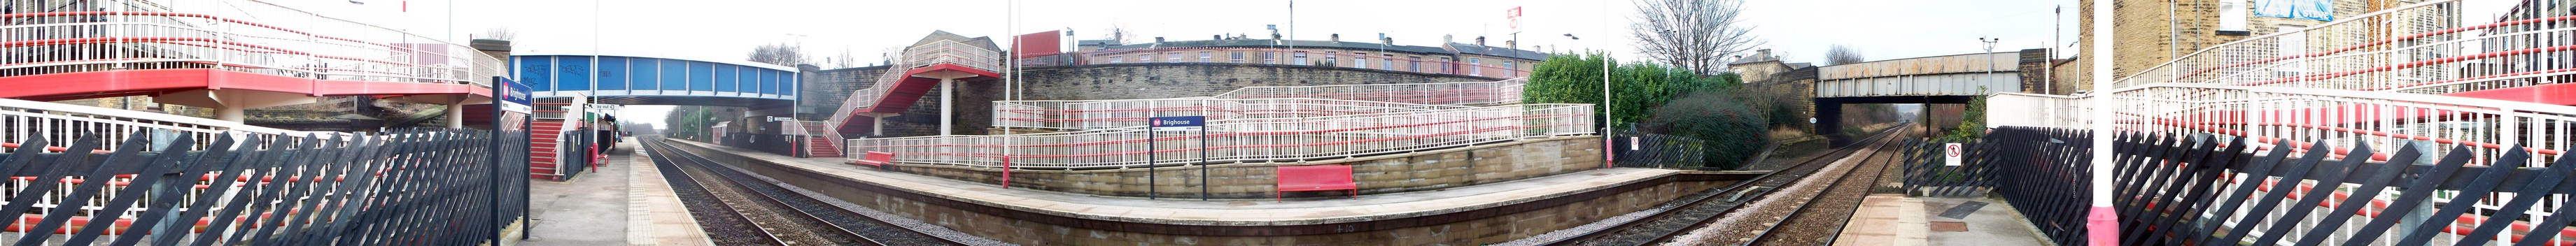 Panorama of Brighouse station in February 2009